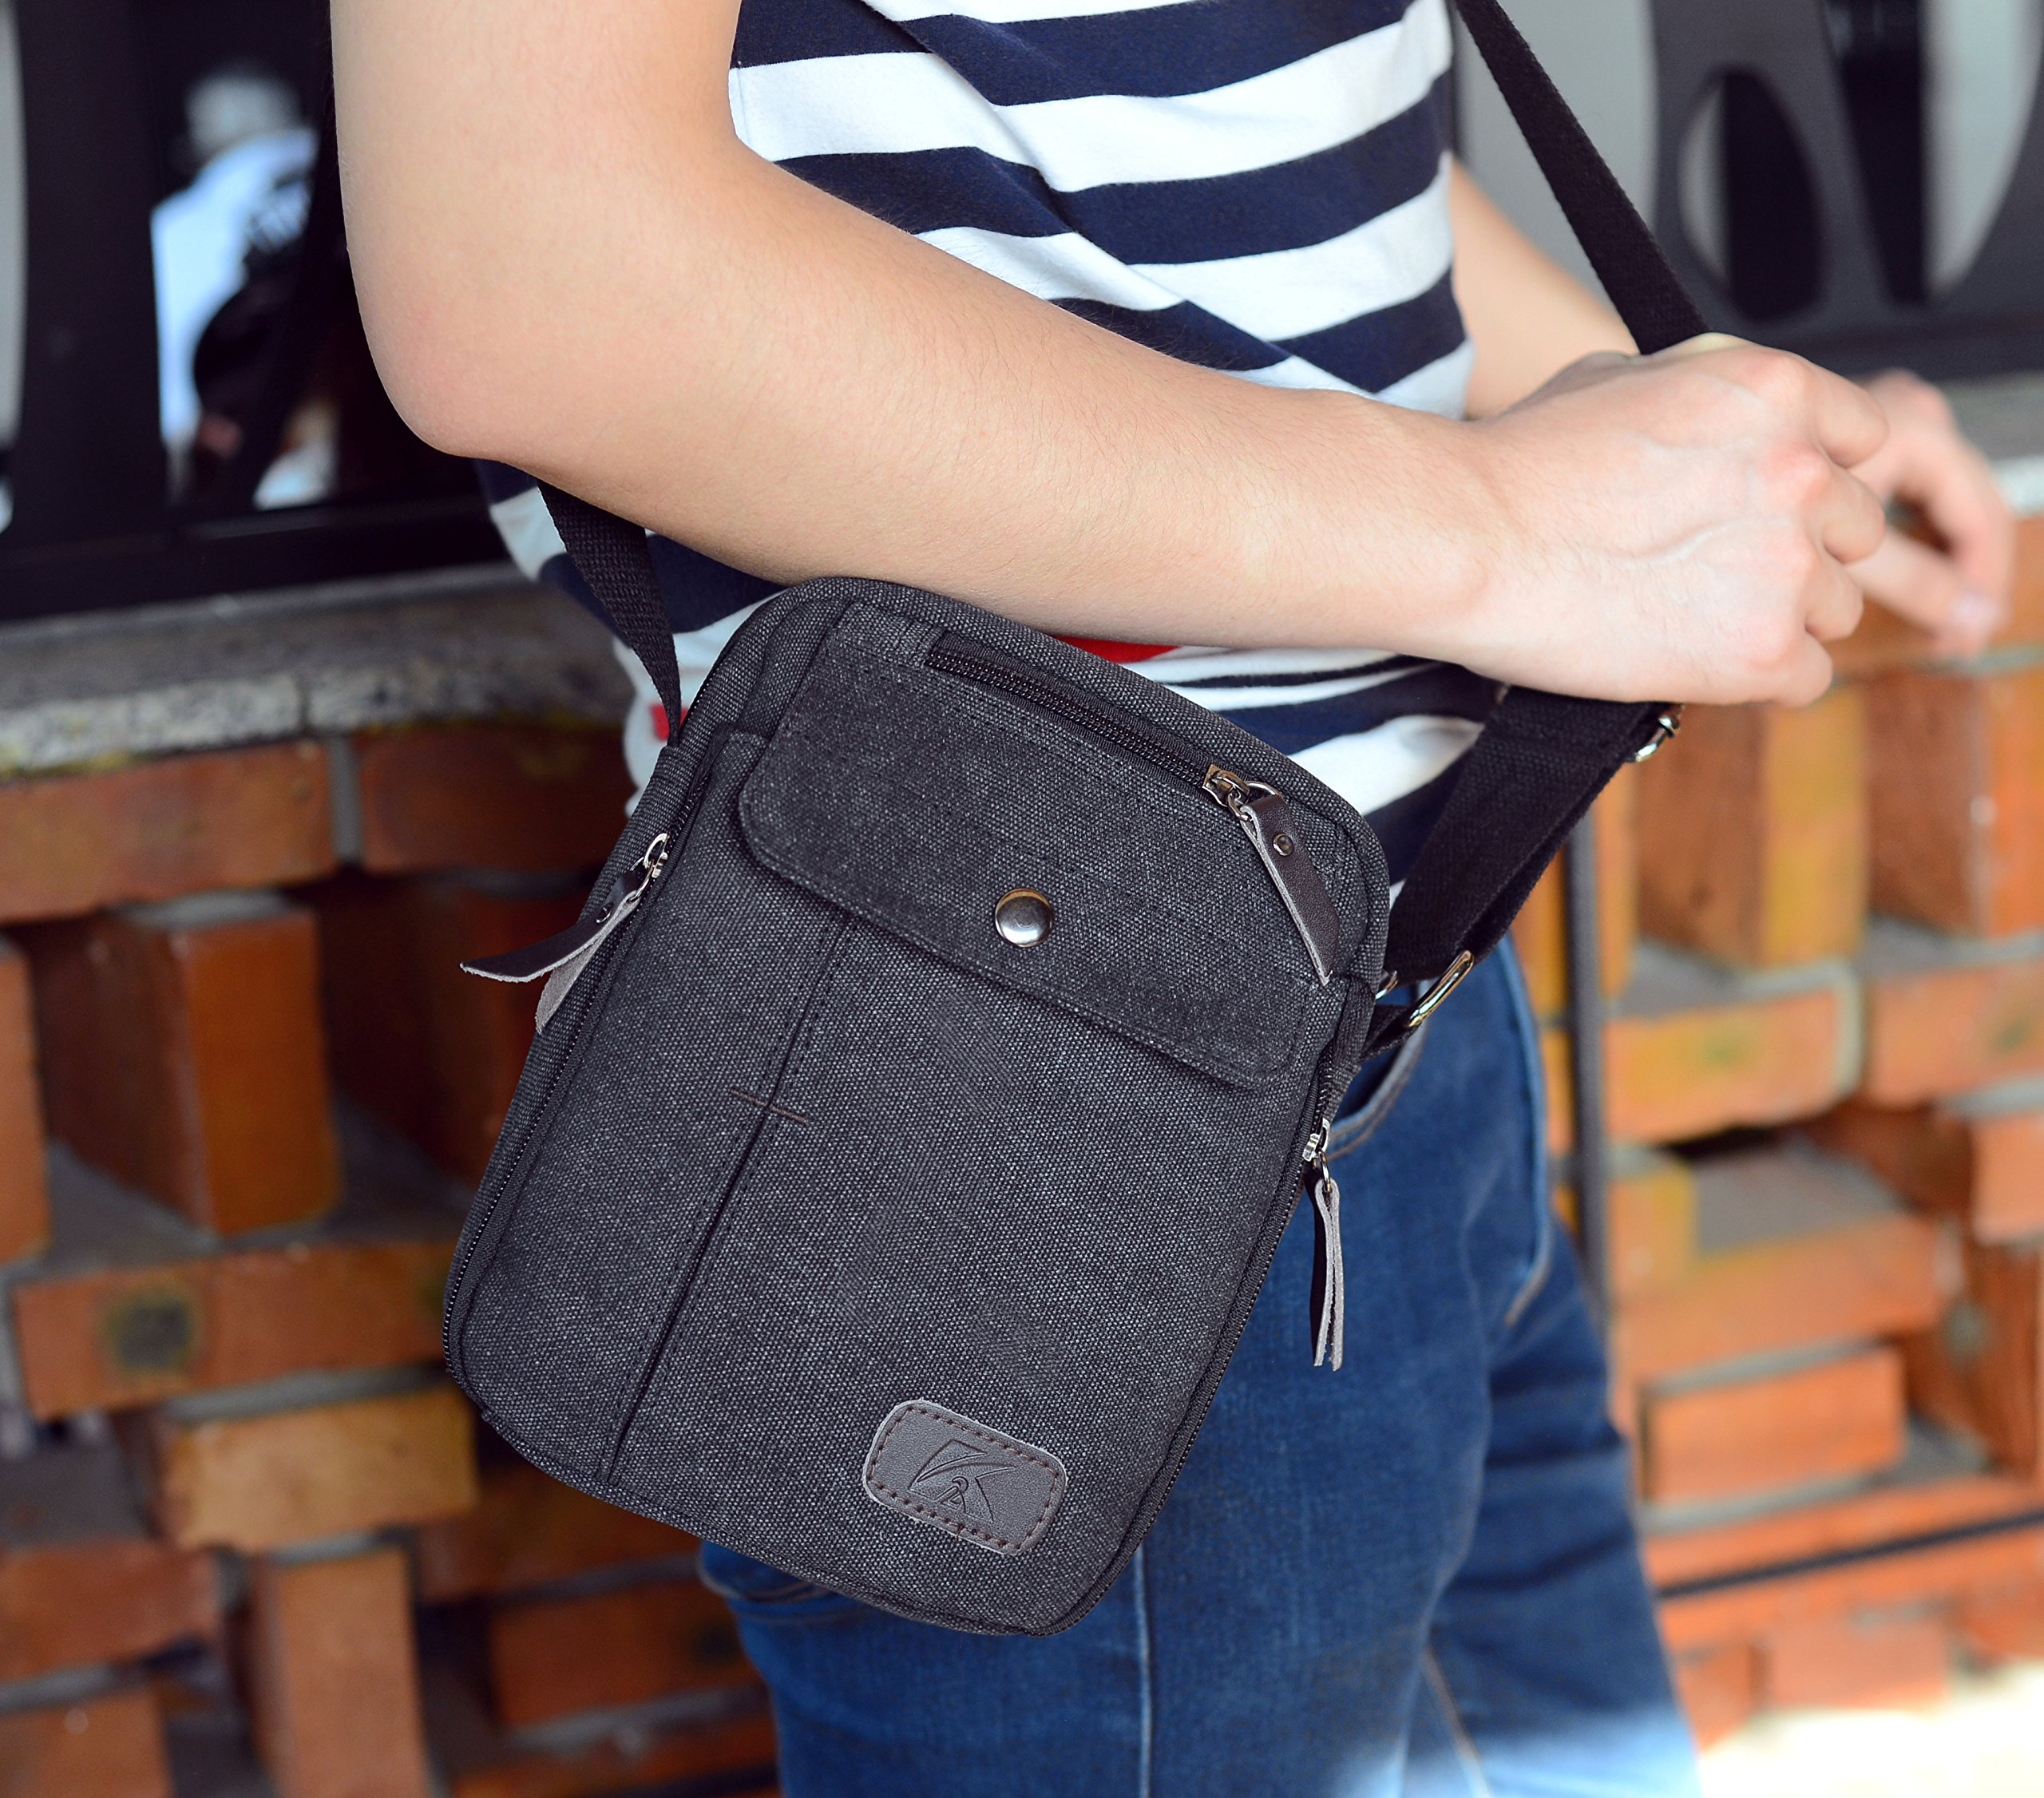 Heavy-Duty Canvas Small Messenger Bag Classic Multi-pocket Mini Shoulder Crossbody Bags Travel Purse by Haoguagua (Image #4)